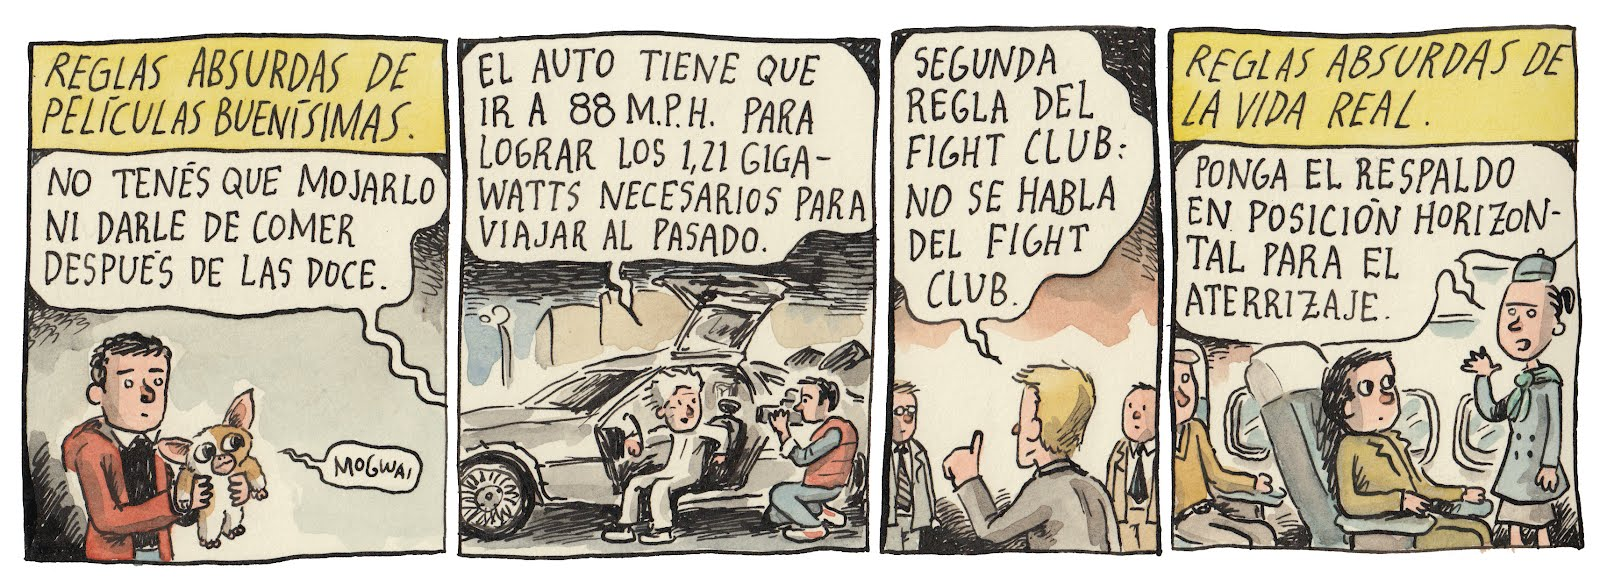 http://lounge.obviousmag.org/memorias_do_subsolo/2012/12/06/liniers%202.jpg